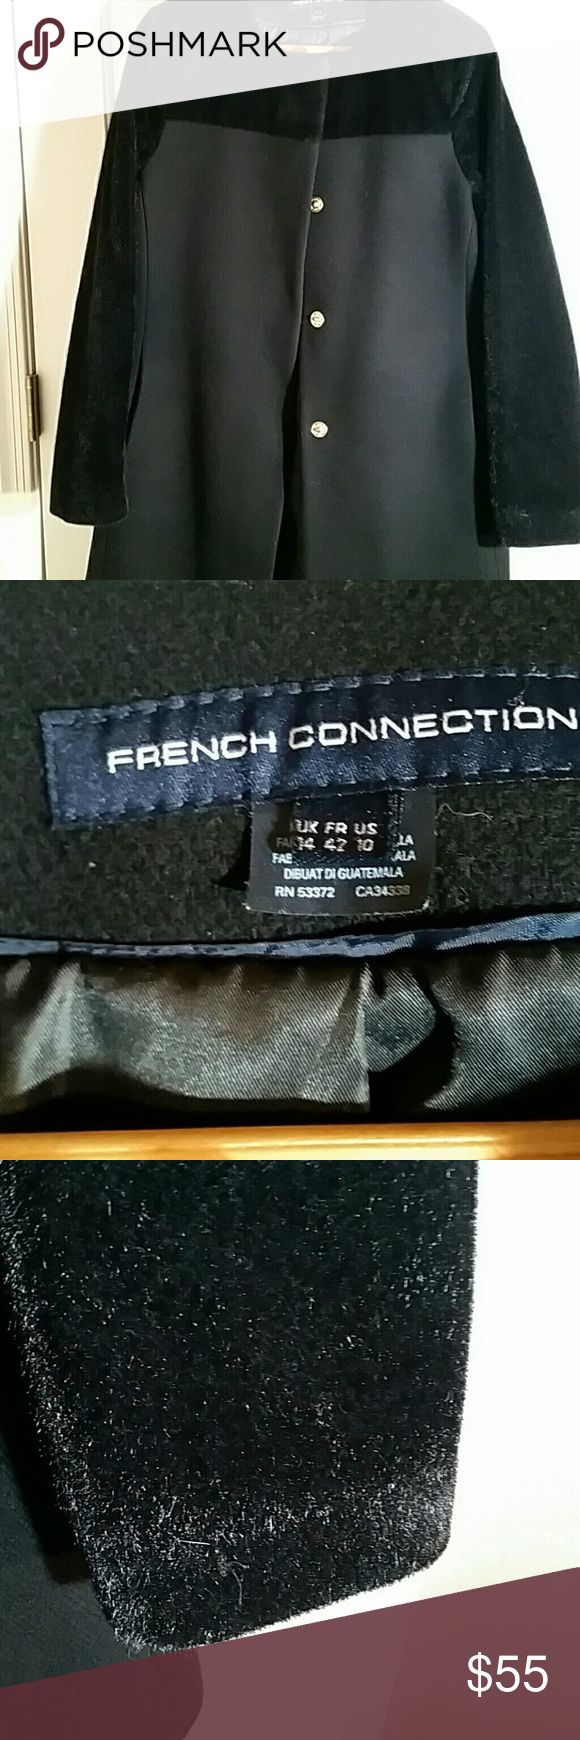 Gorgeous french connection car coat. Gorgeous. Ladies faux fur sleeves and collar. Snap closure. Fully lined. Very fashionable. Just picked up from the cleaner. PERFECT CONDITION. Knee length. Worn one short season. Bought from rue la la  .still selling in retail stores. Trending 99. Buy now and save money. Black on black. French Connection Jackets & Coats